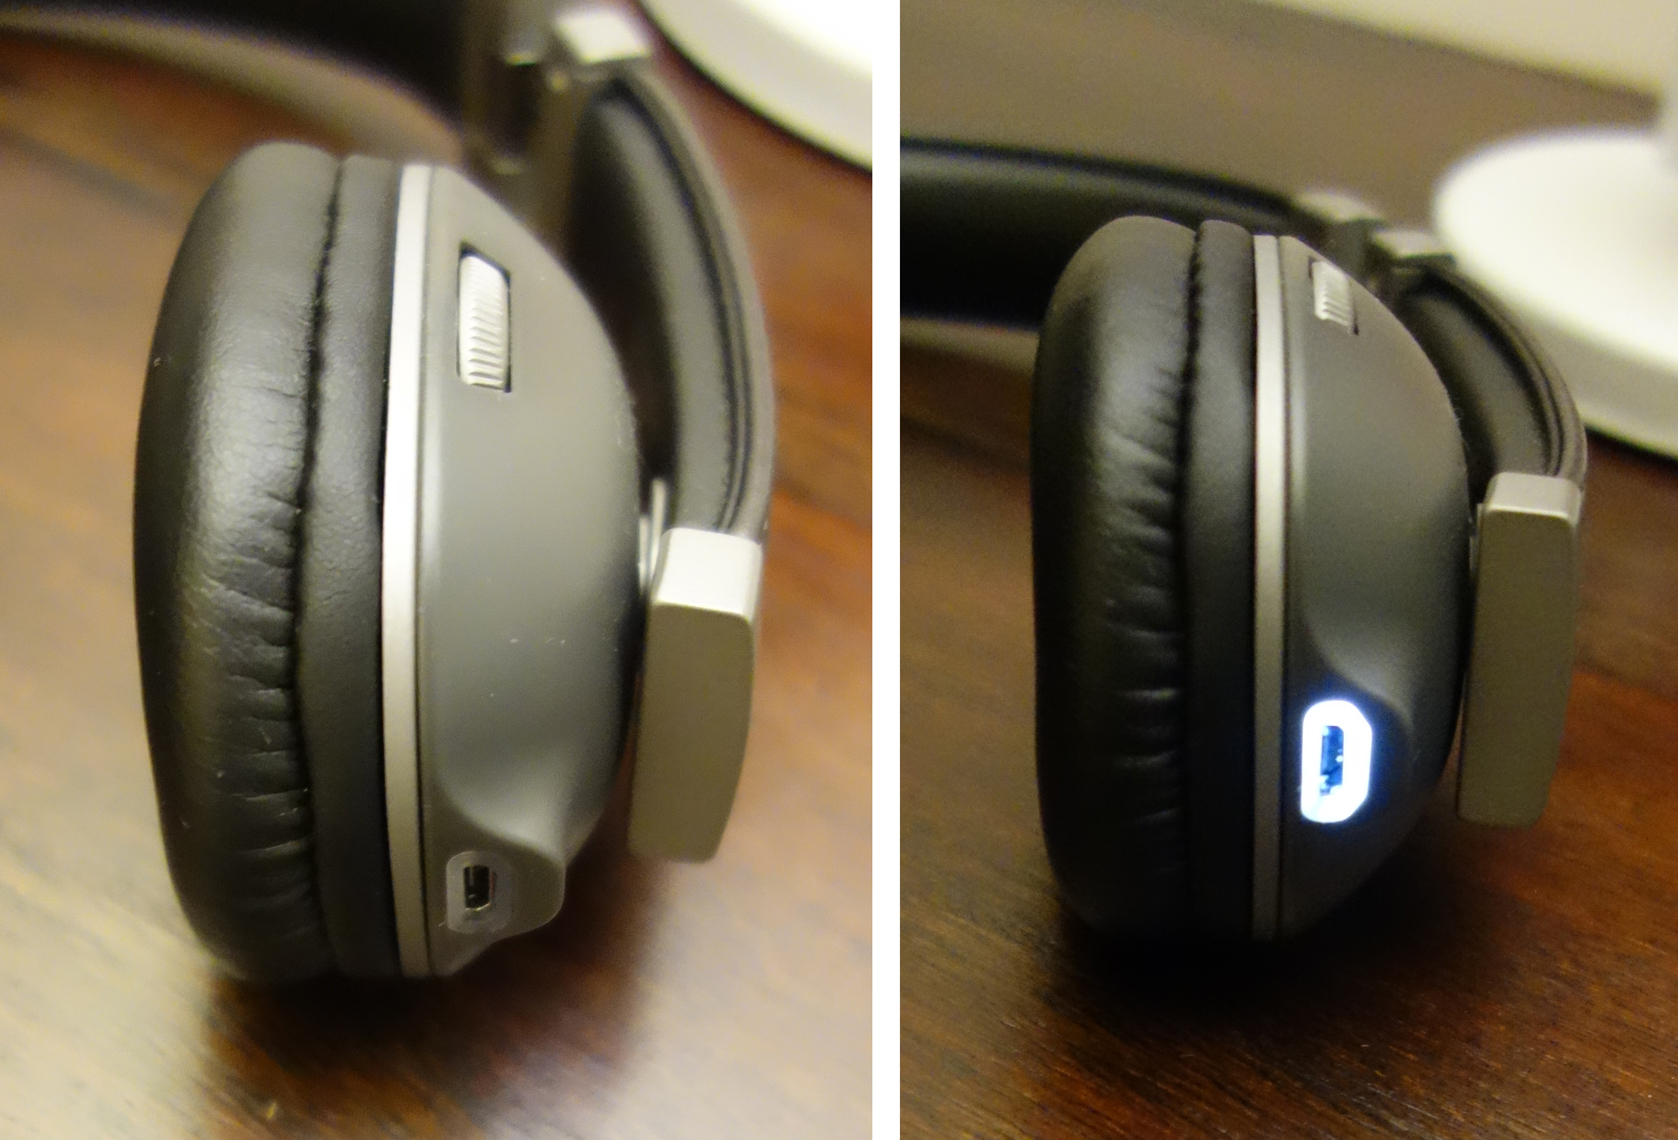 Polk Hinge Wireless Black Headset Review Micro USB Jack